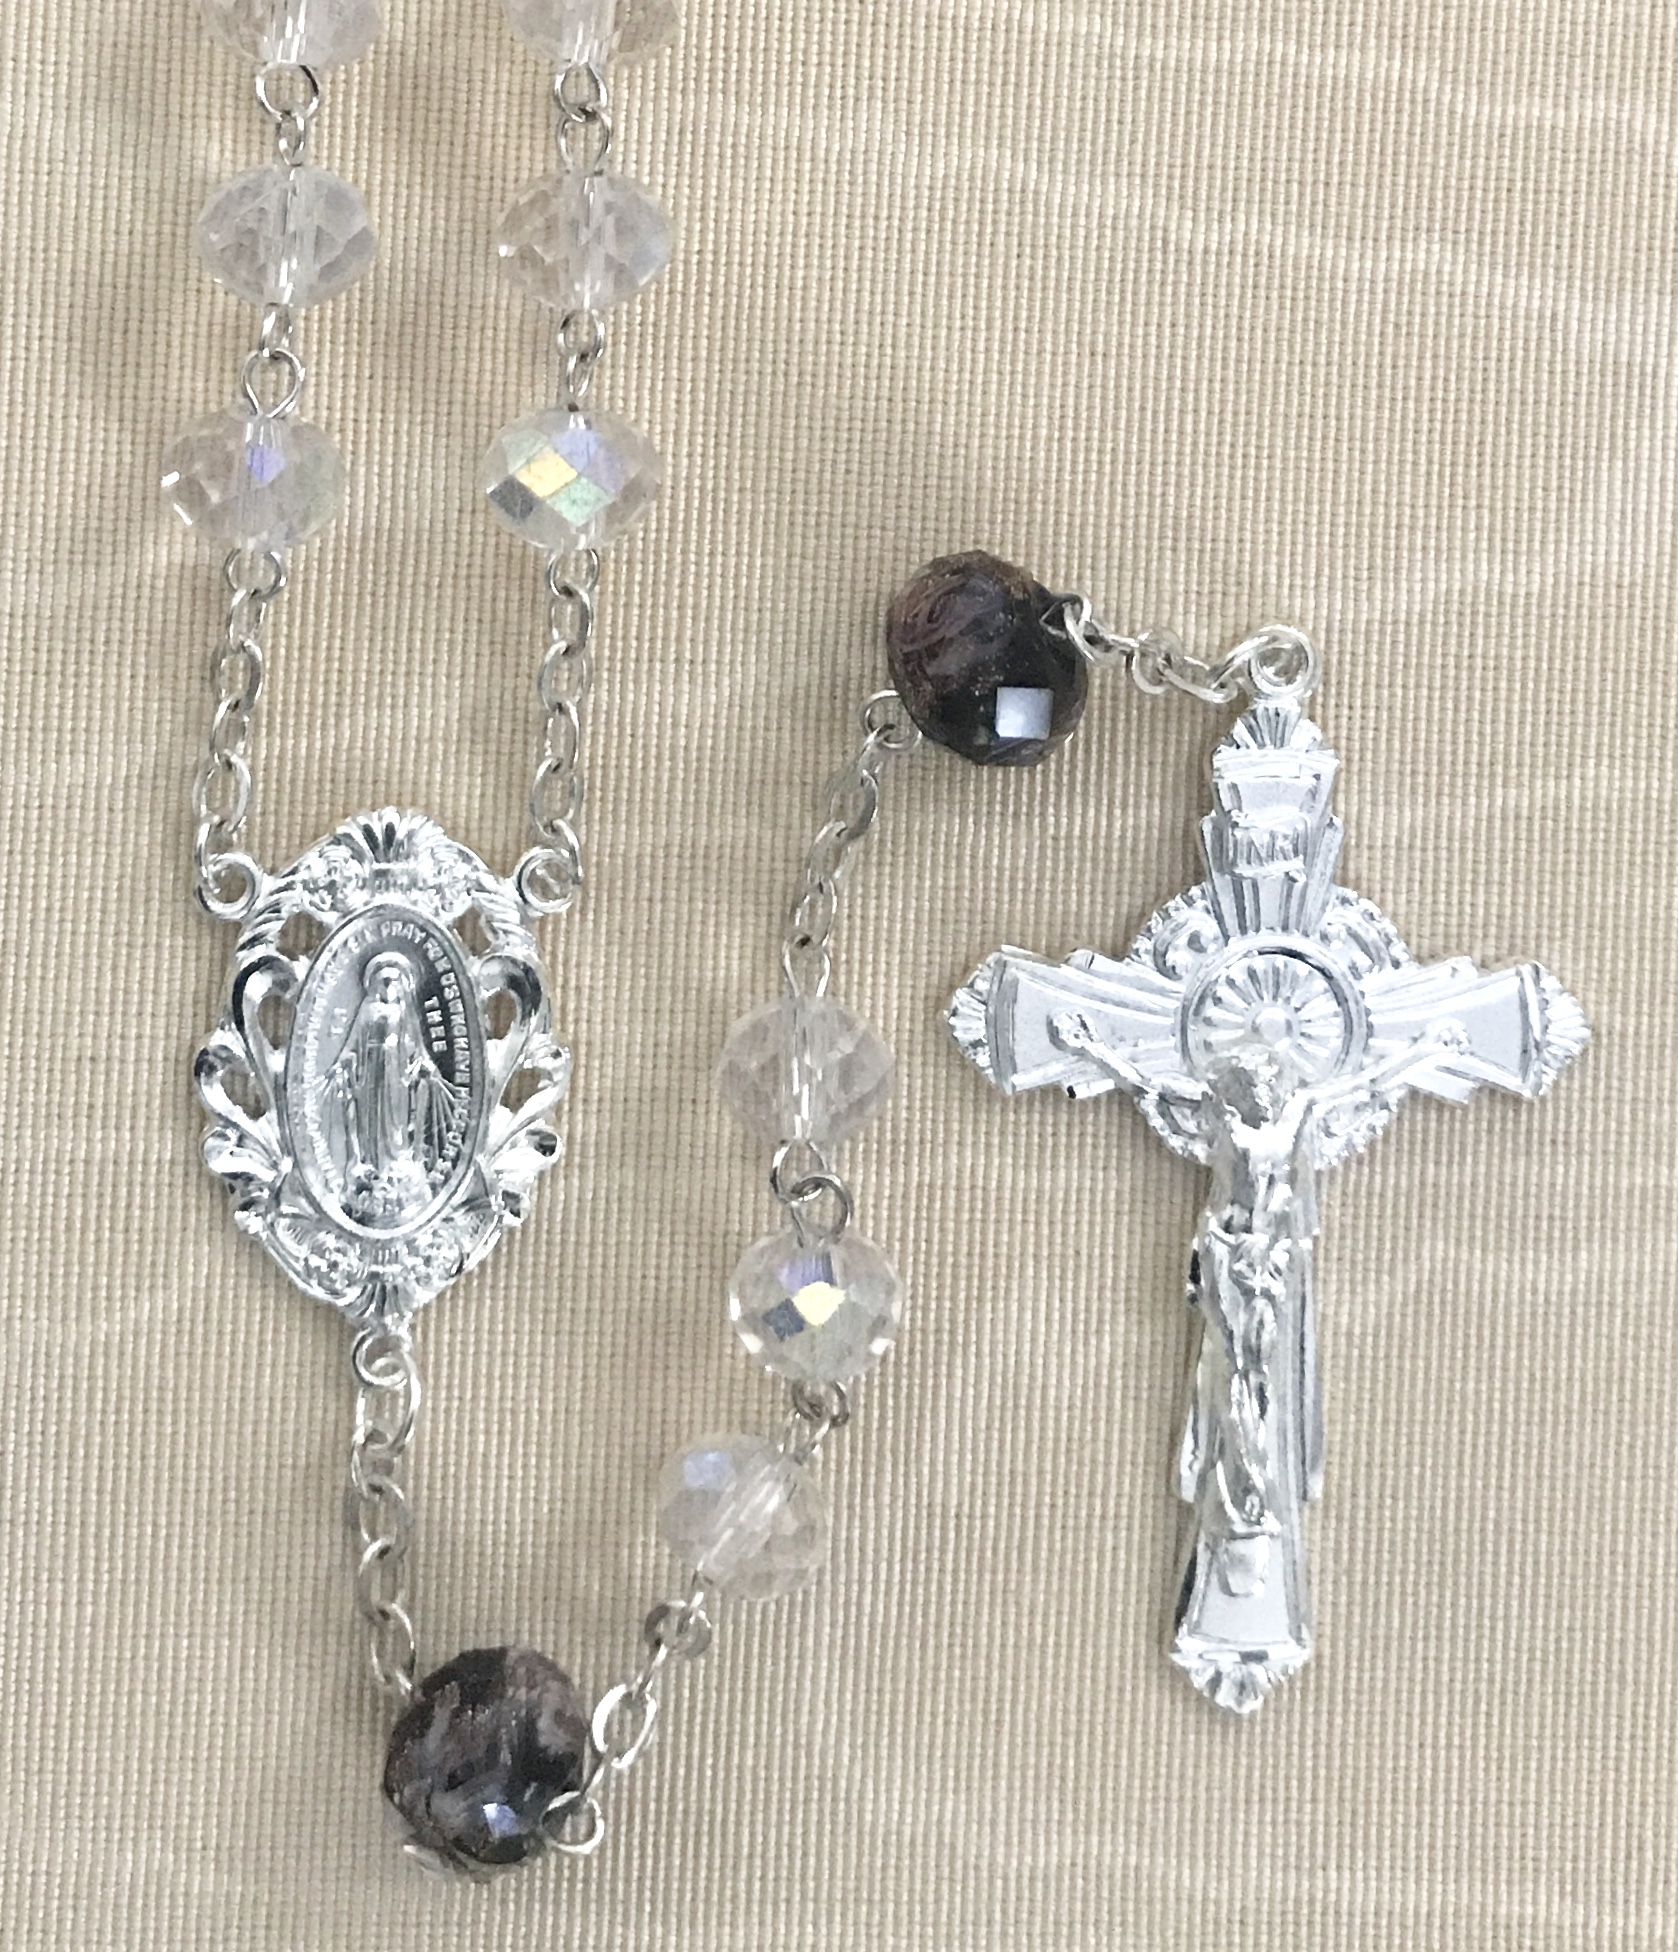 8X6 TIN CUT AB CRYSTAL ROSARY WITH STERLING SILVER PLATED CRUCIFIX AND CENTER GIFT BOXED